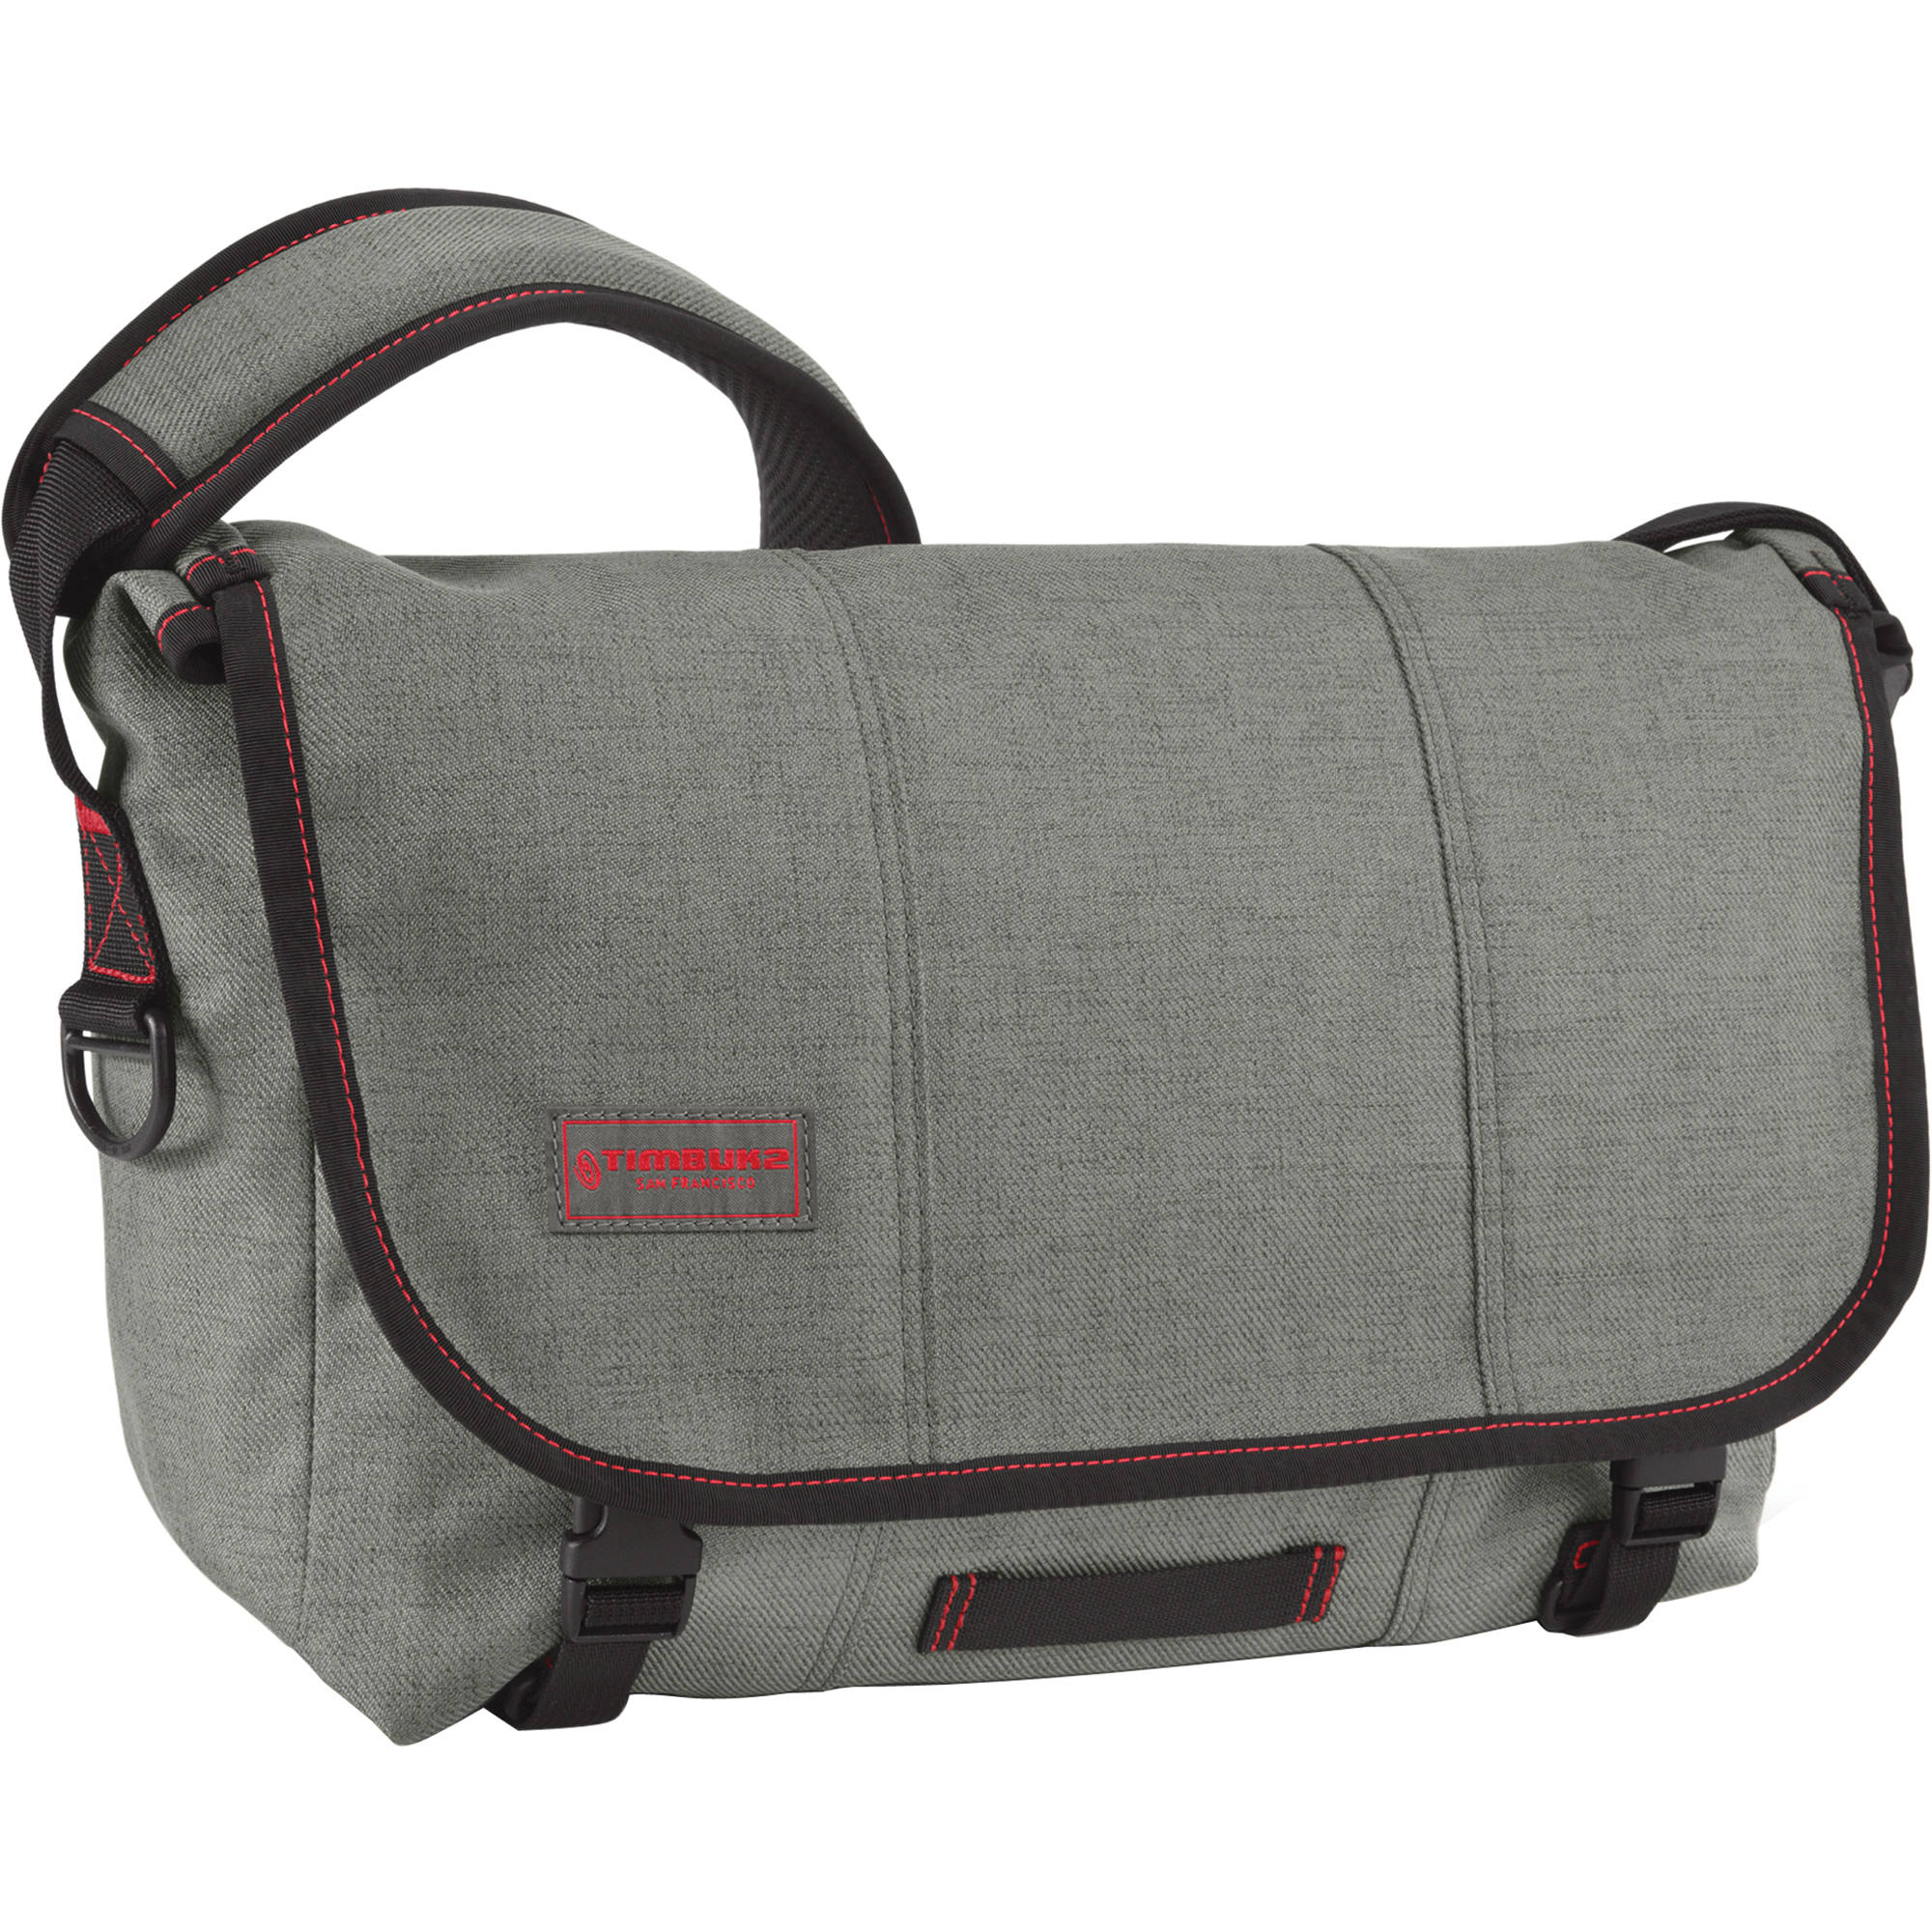 Timbuk2 Classic Messenger Bag 116-4-2226 B&H Photo Video